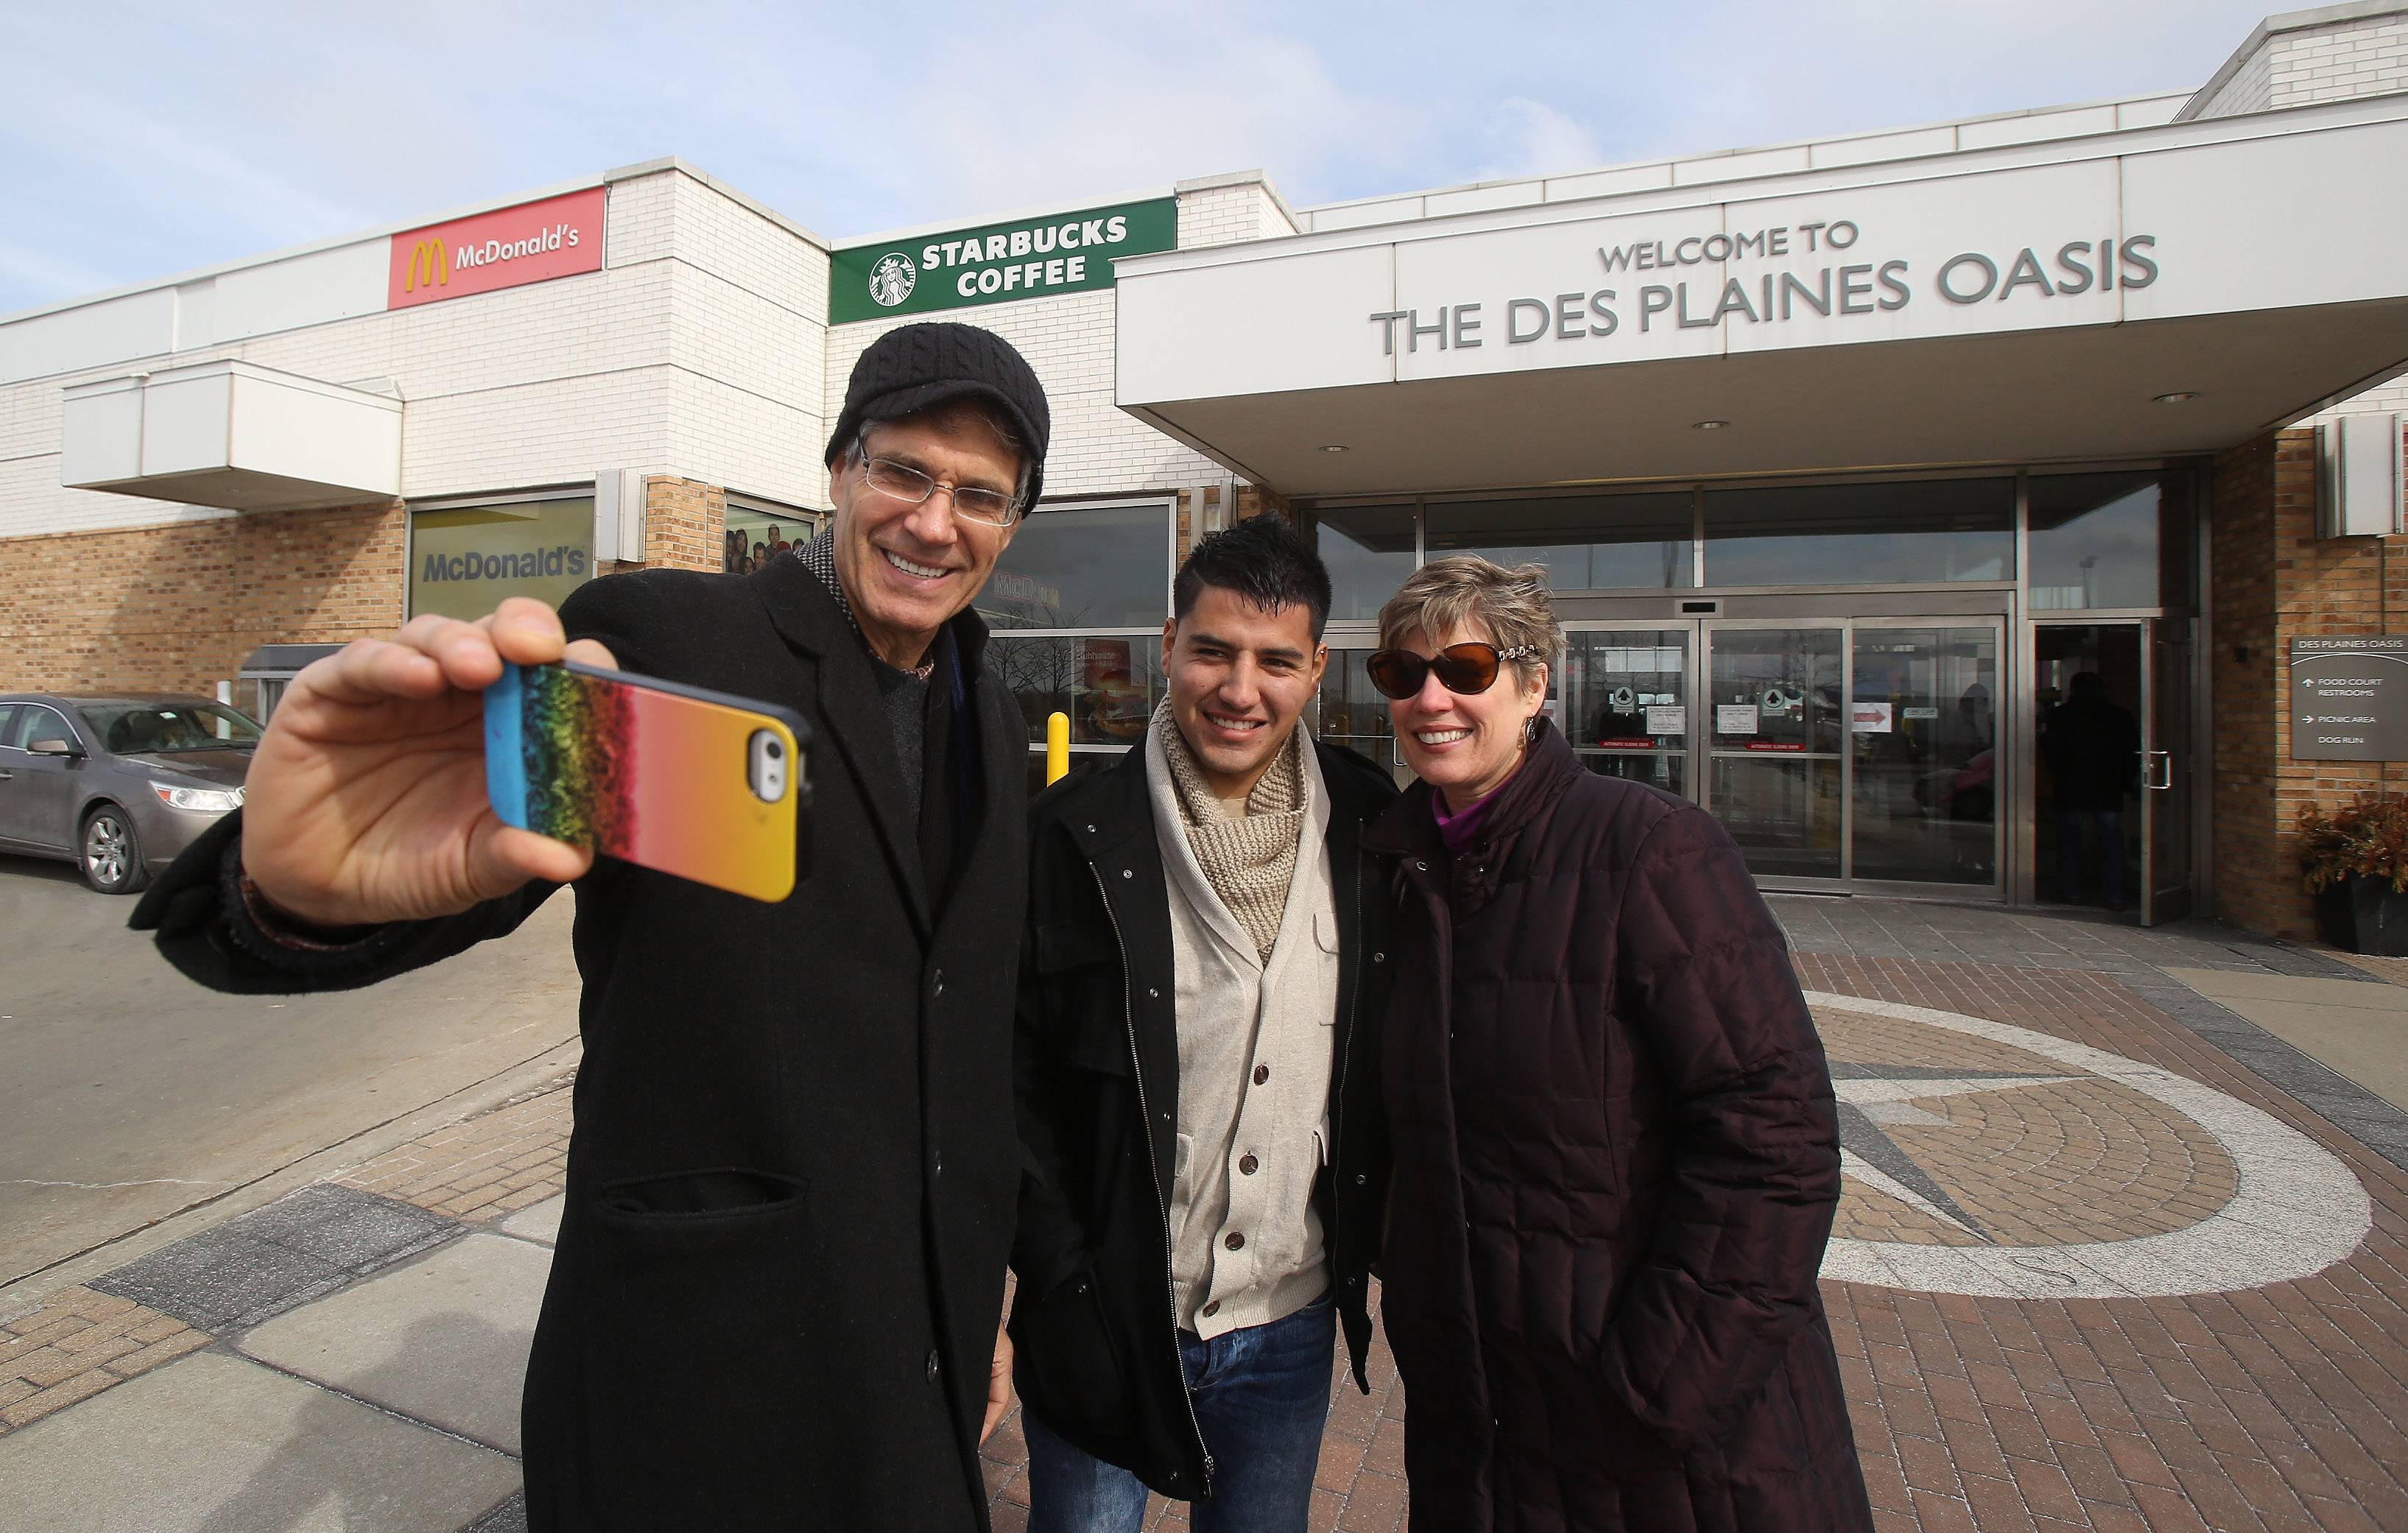 Streamwood resident Larry Pahl takes a picture of himself Sunday with Oliver Huerta and Pahl's wife, Lynn, on the last day of operation of the Des Plaines Oasis. Pahl, a Bartlett High School civics teacher, said he remembers visiting the Oasis during the its first year in 1959.